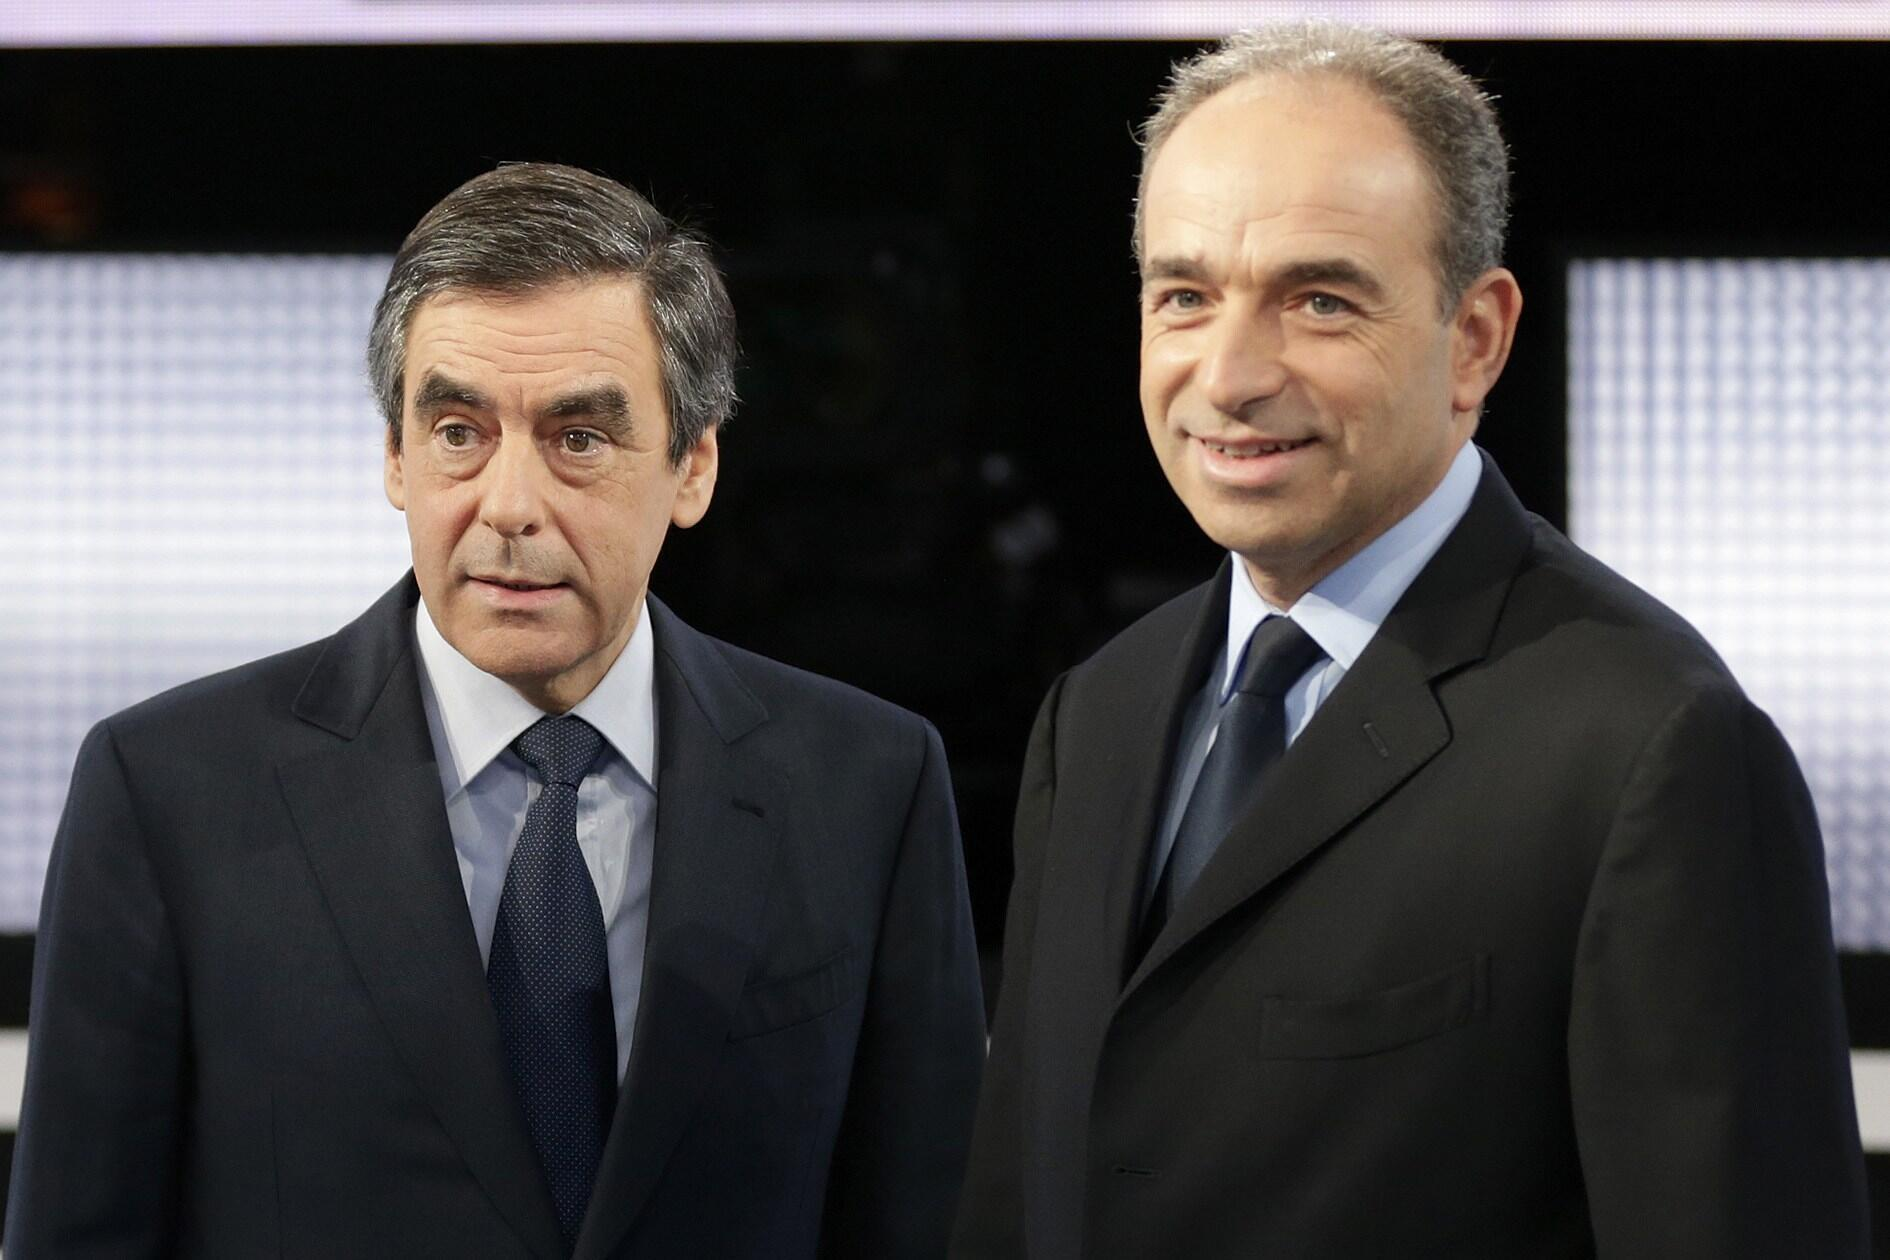 Jean-Francois Cope and Francois Fillon at the France 2 television studios last month